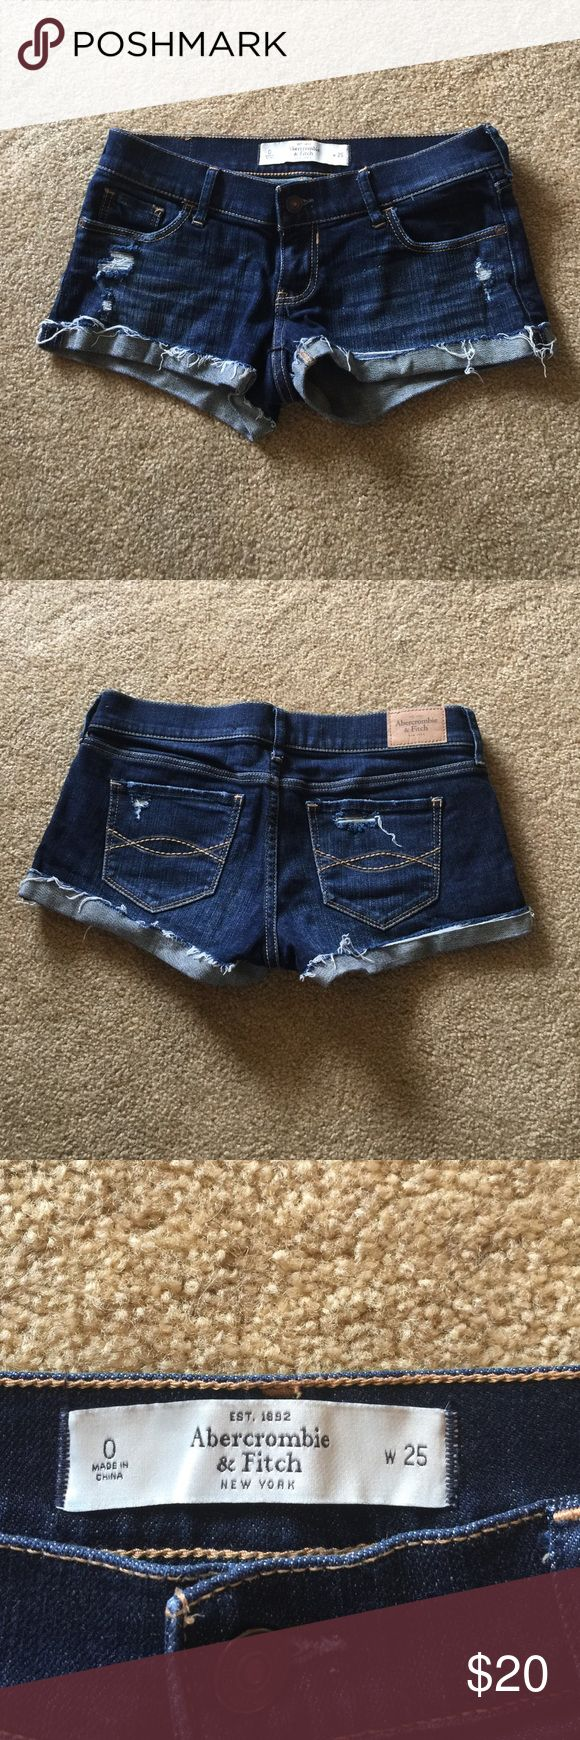 Abercrombie Jean shorts Never worn, like new Abercrombie & Fitch Shorts Jean Shorts